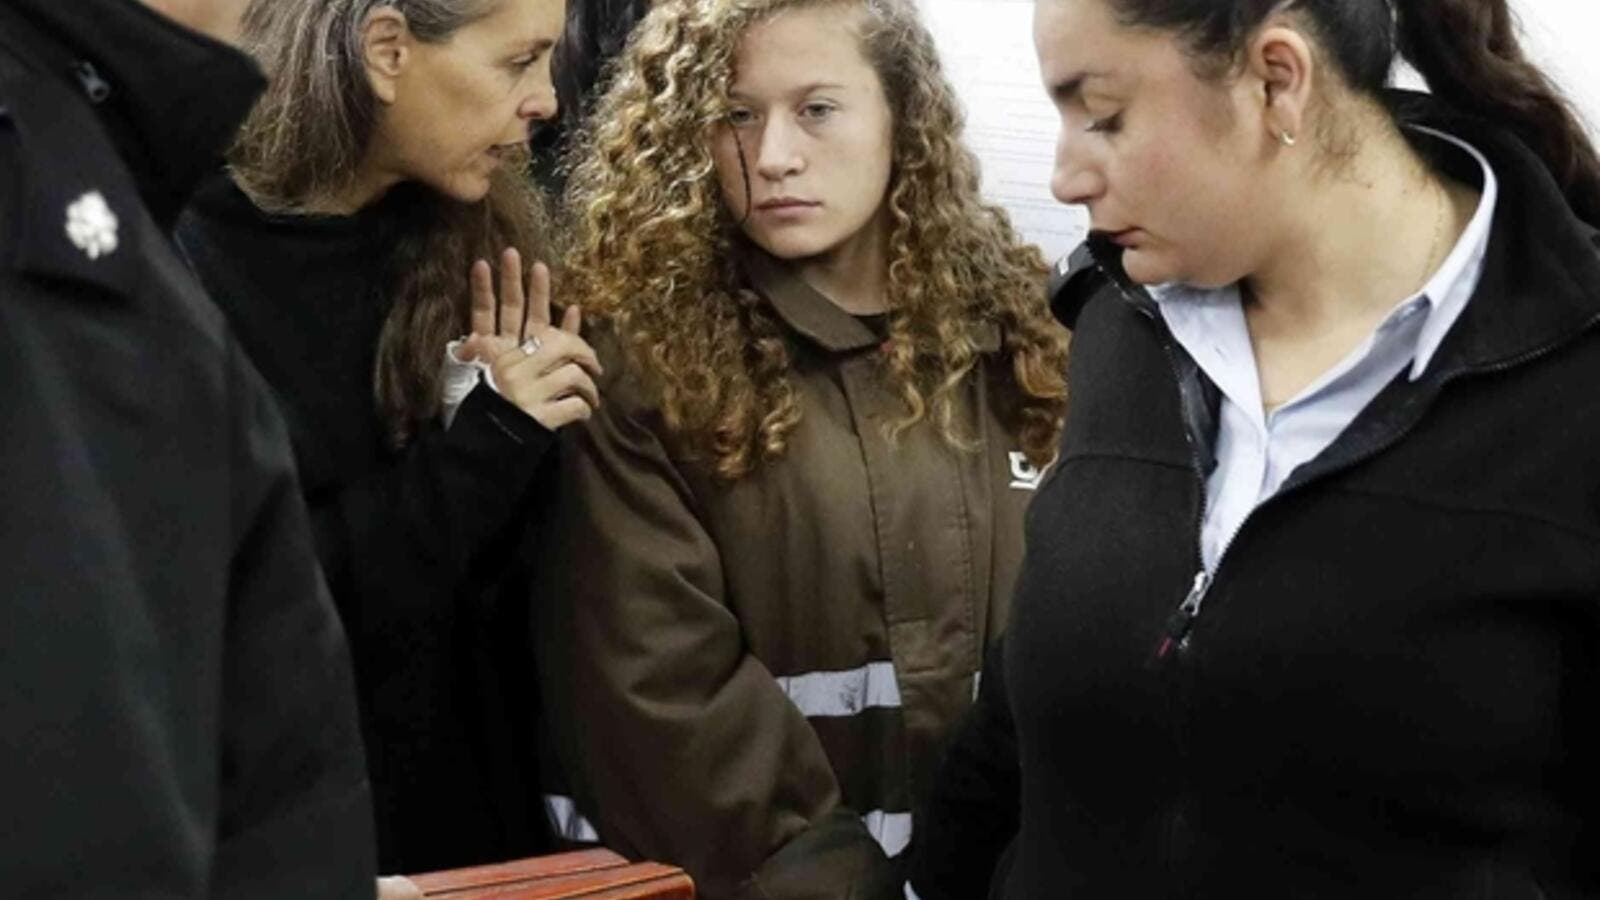 Israeli lawyer Gaby Lasky speaks with Ahed Tamimi, her client (AFP/File Photo)